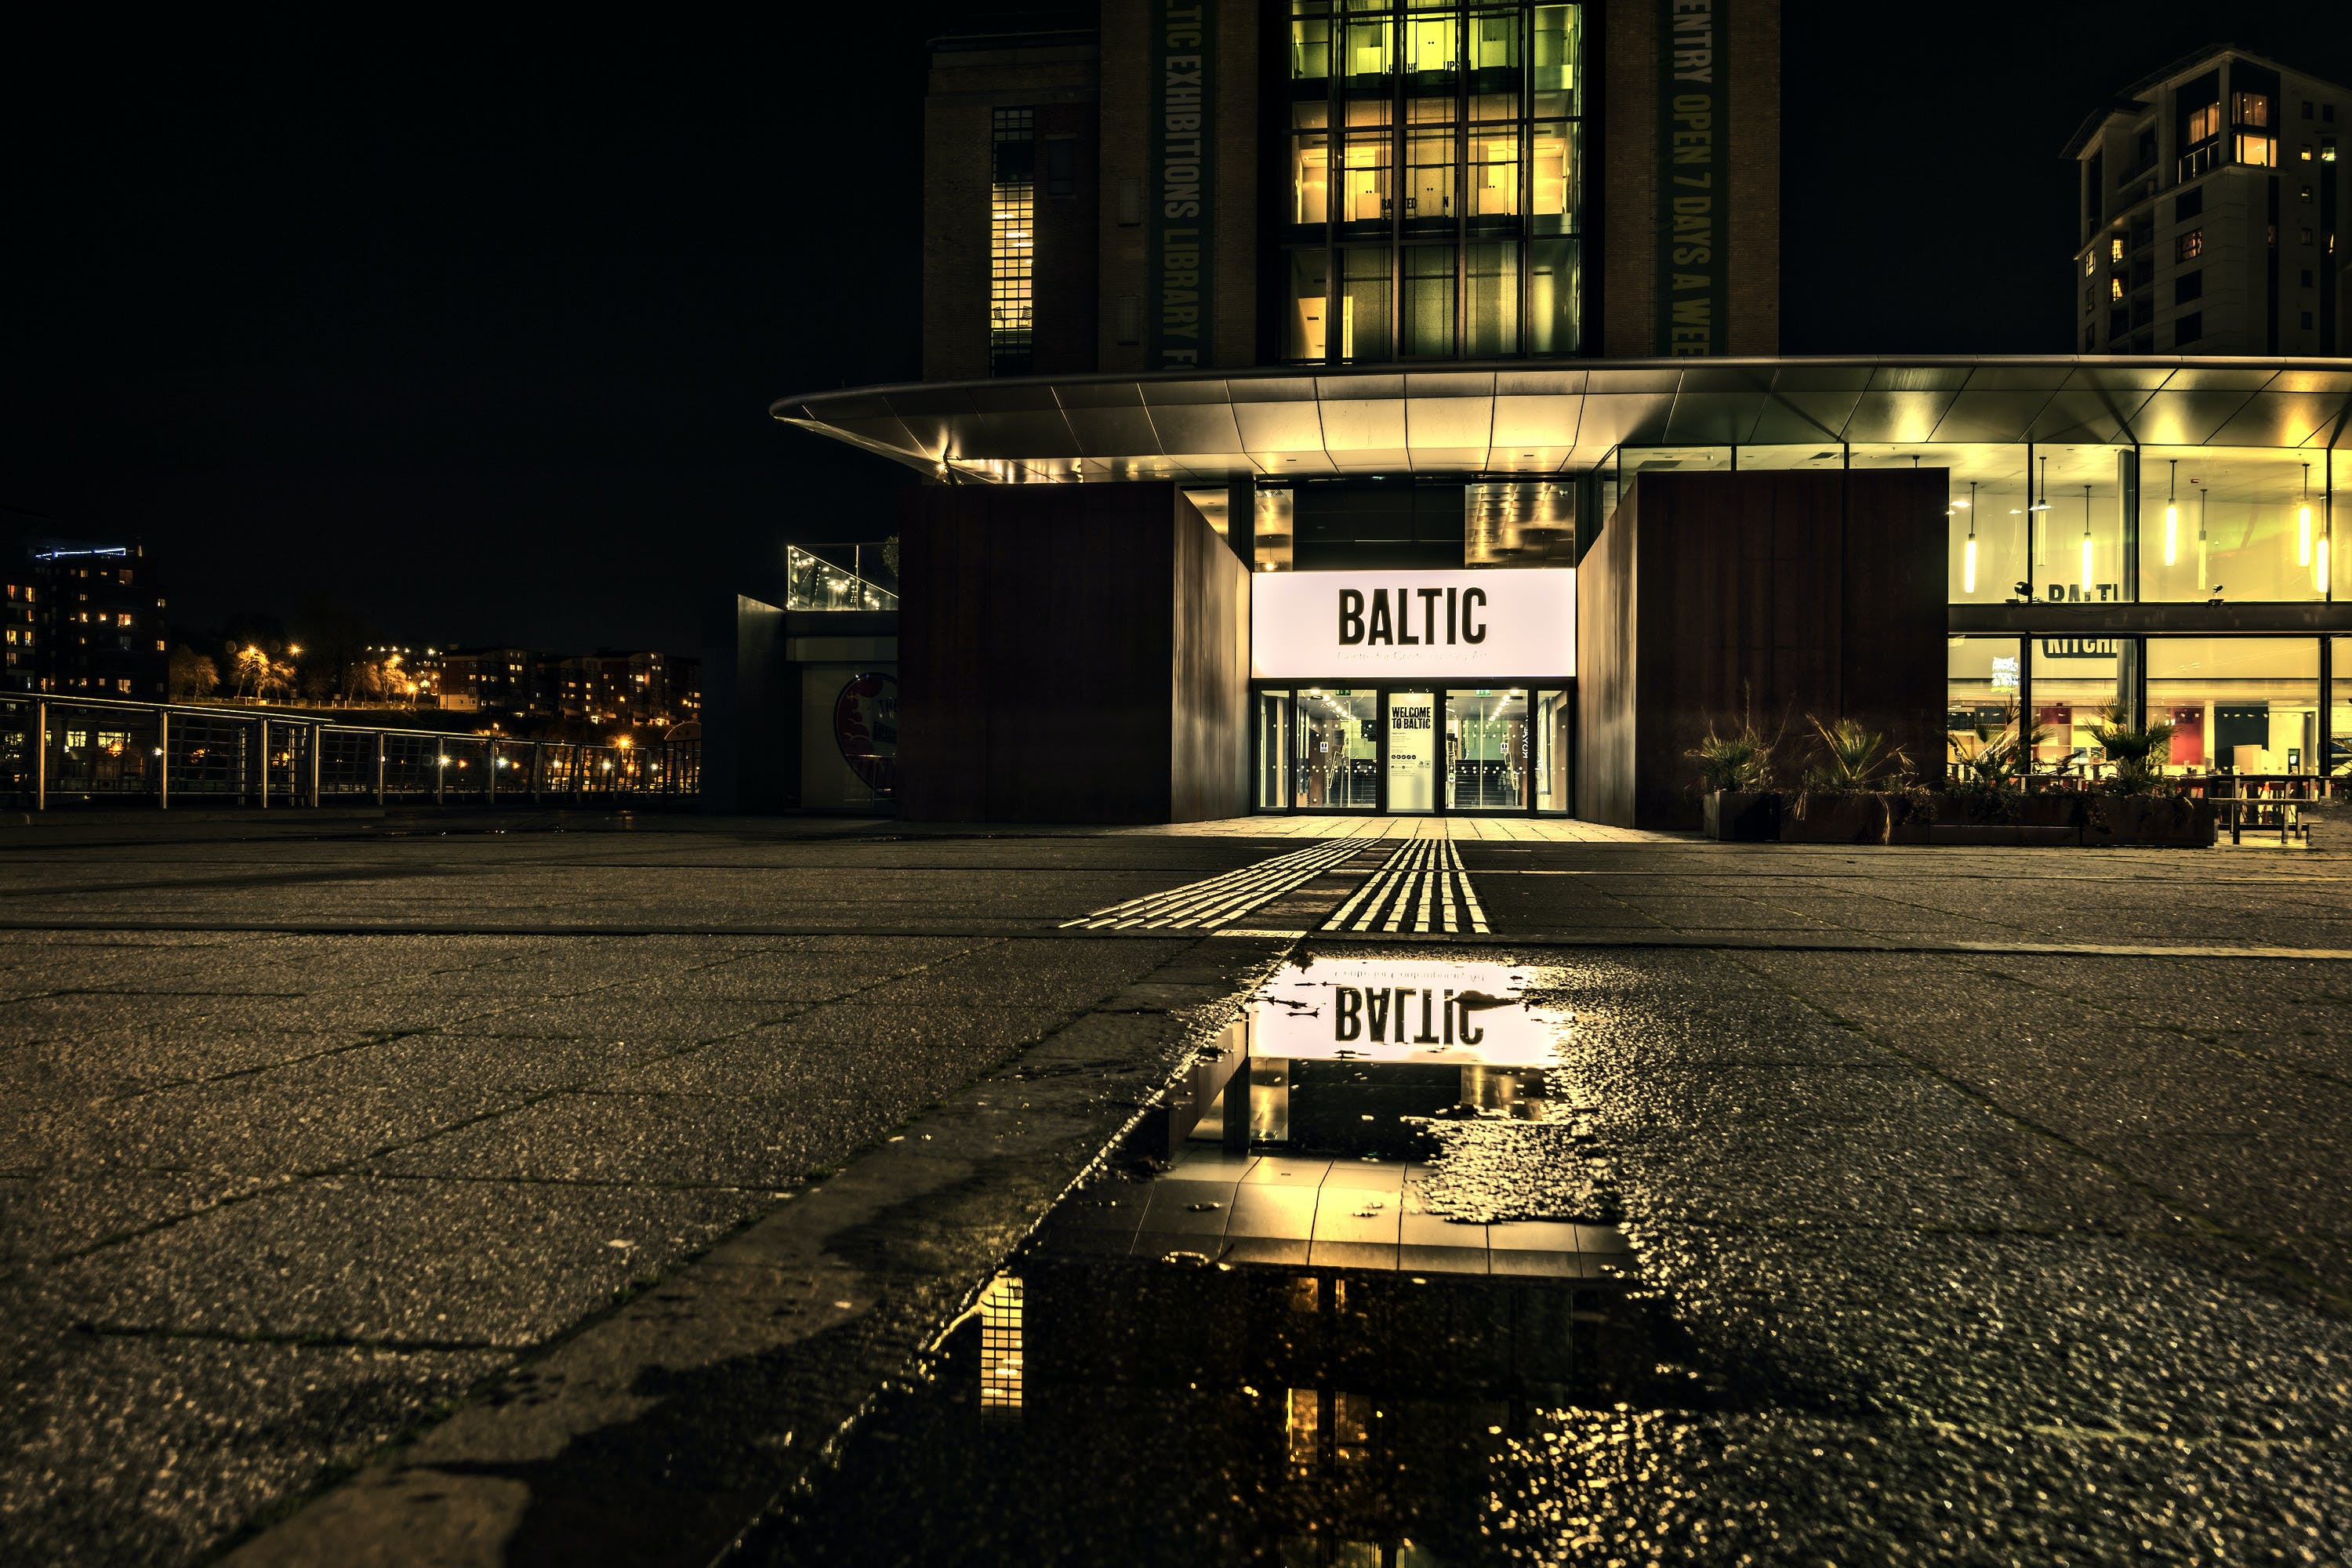 Baltic Shop in the Distance